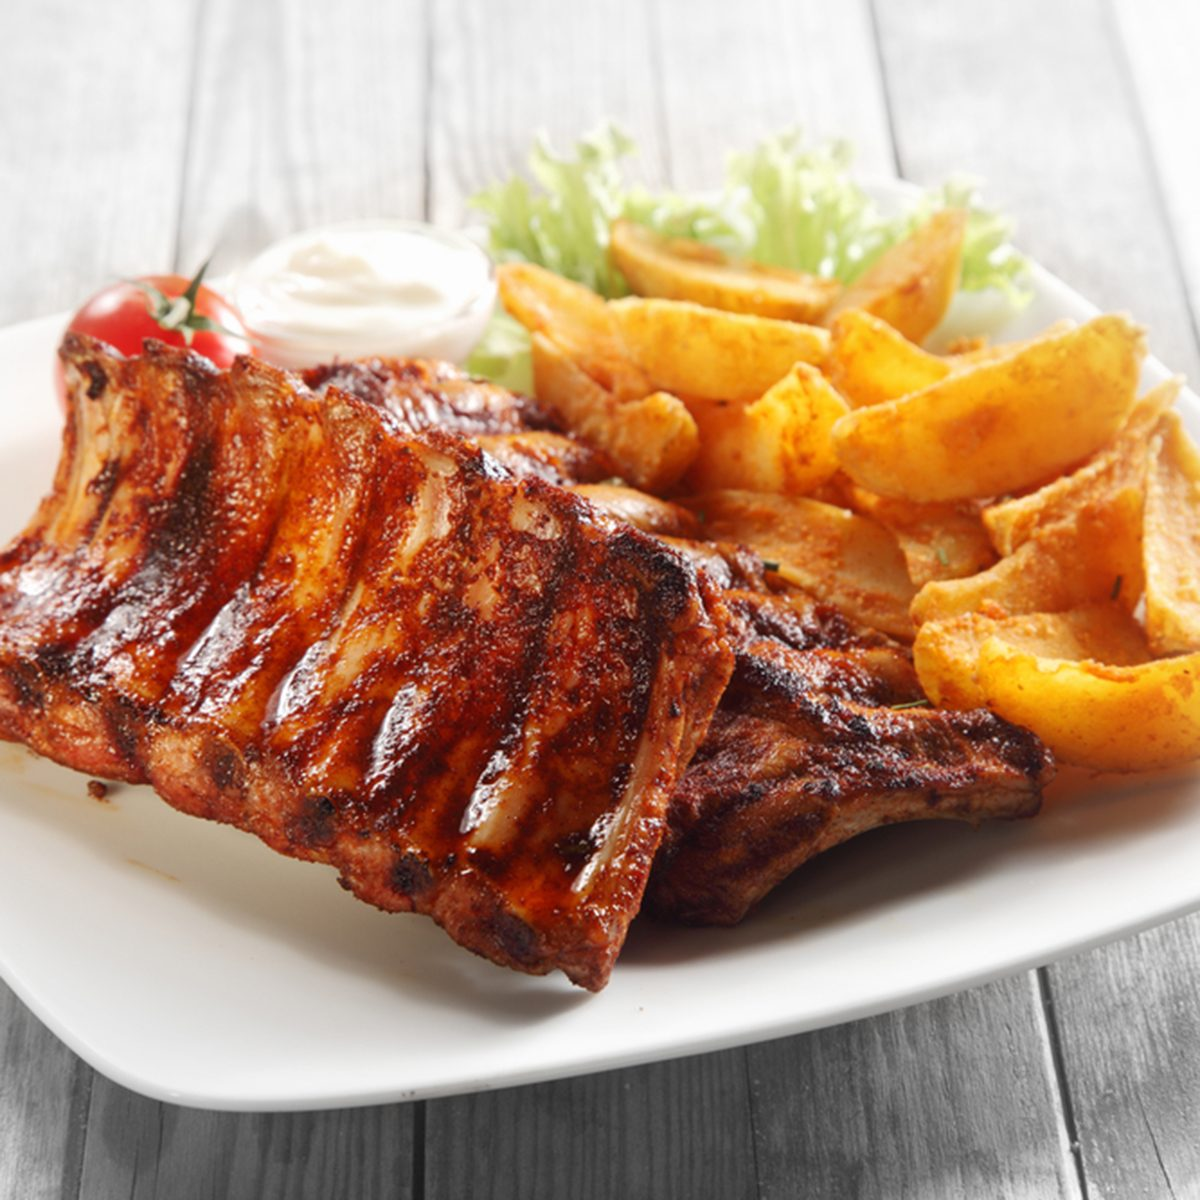 Close up Gourmet Main Dish with Grilled Pork Rib and Fried Potatoes on White Plate.